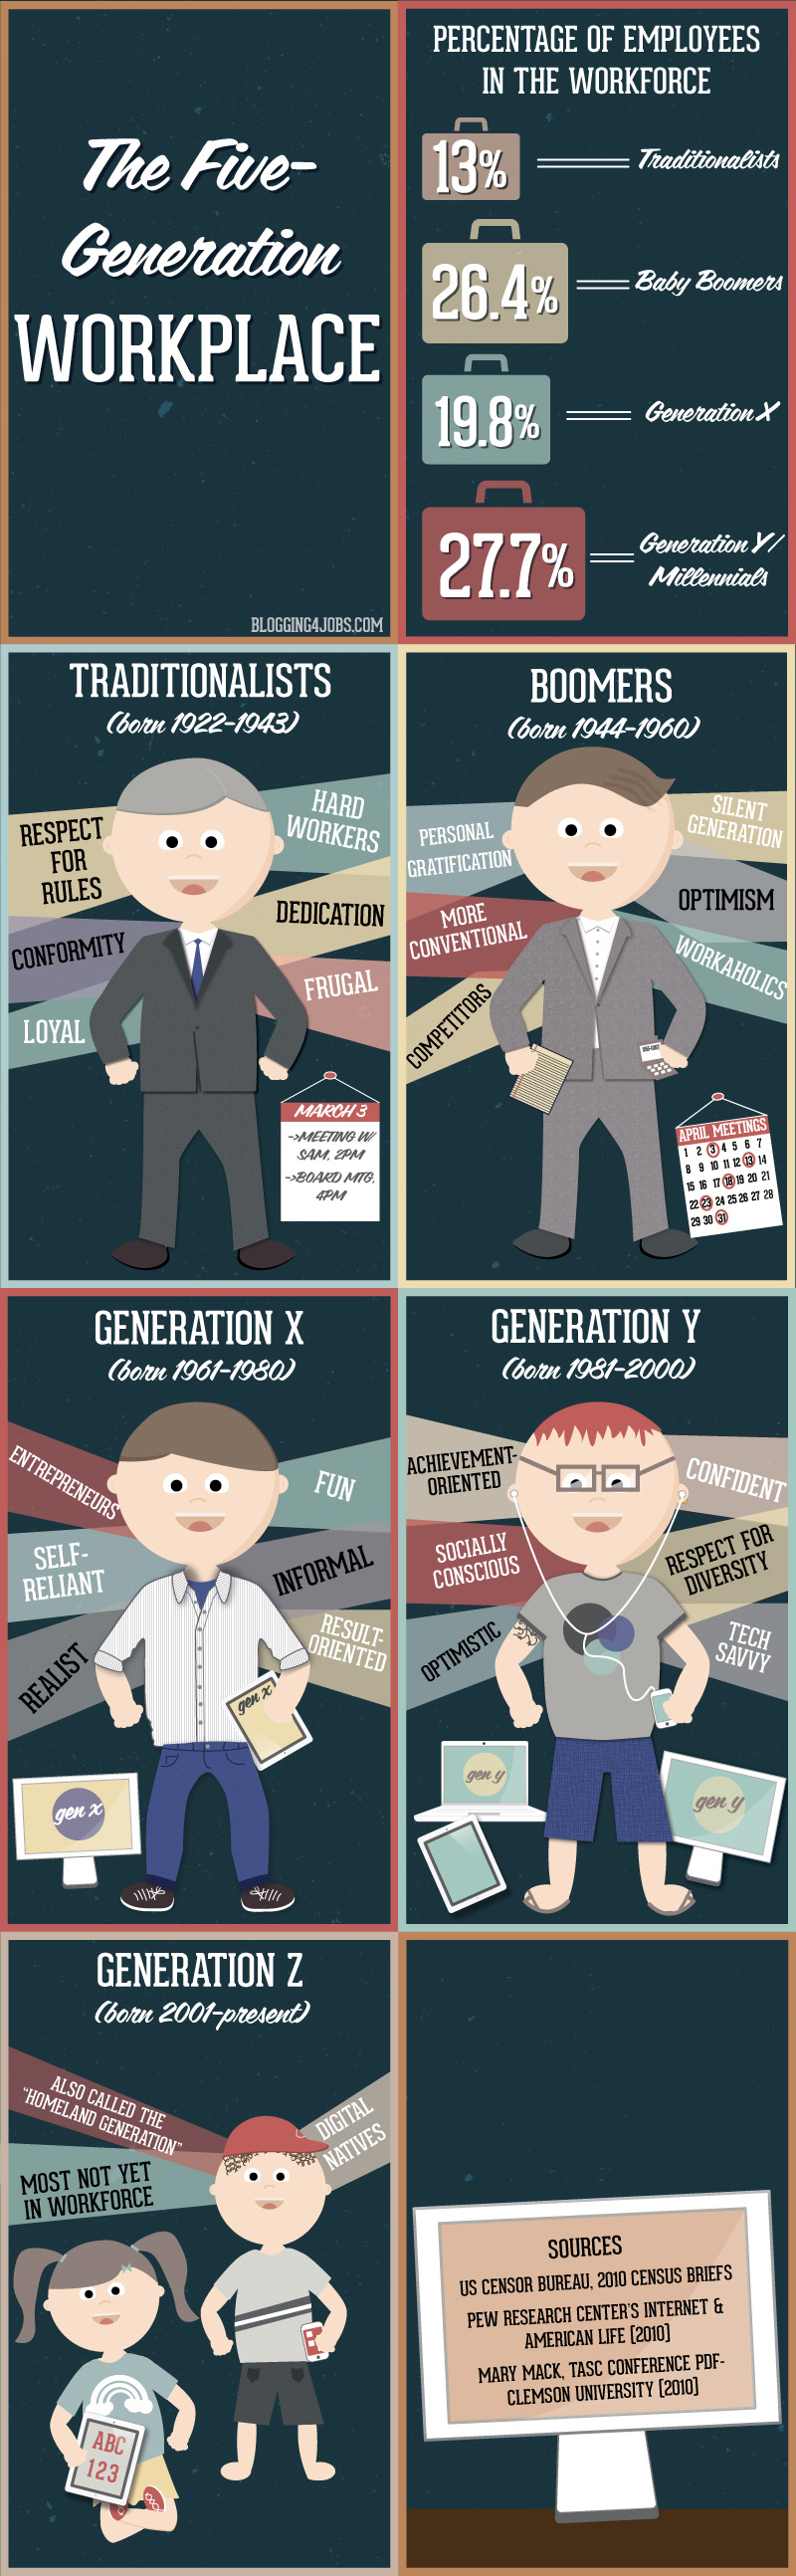 The 5 Gap Generation Workplace #infographic